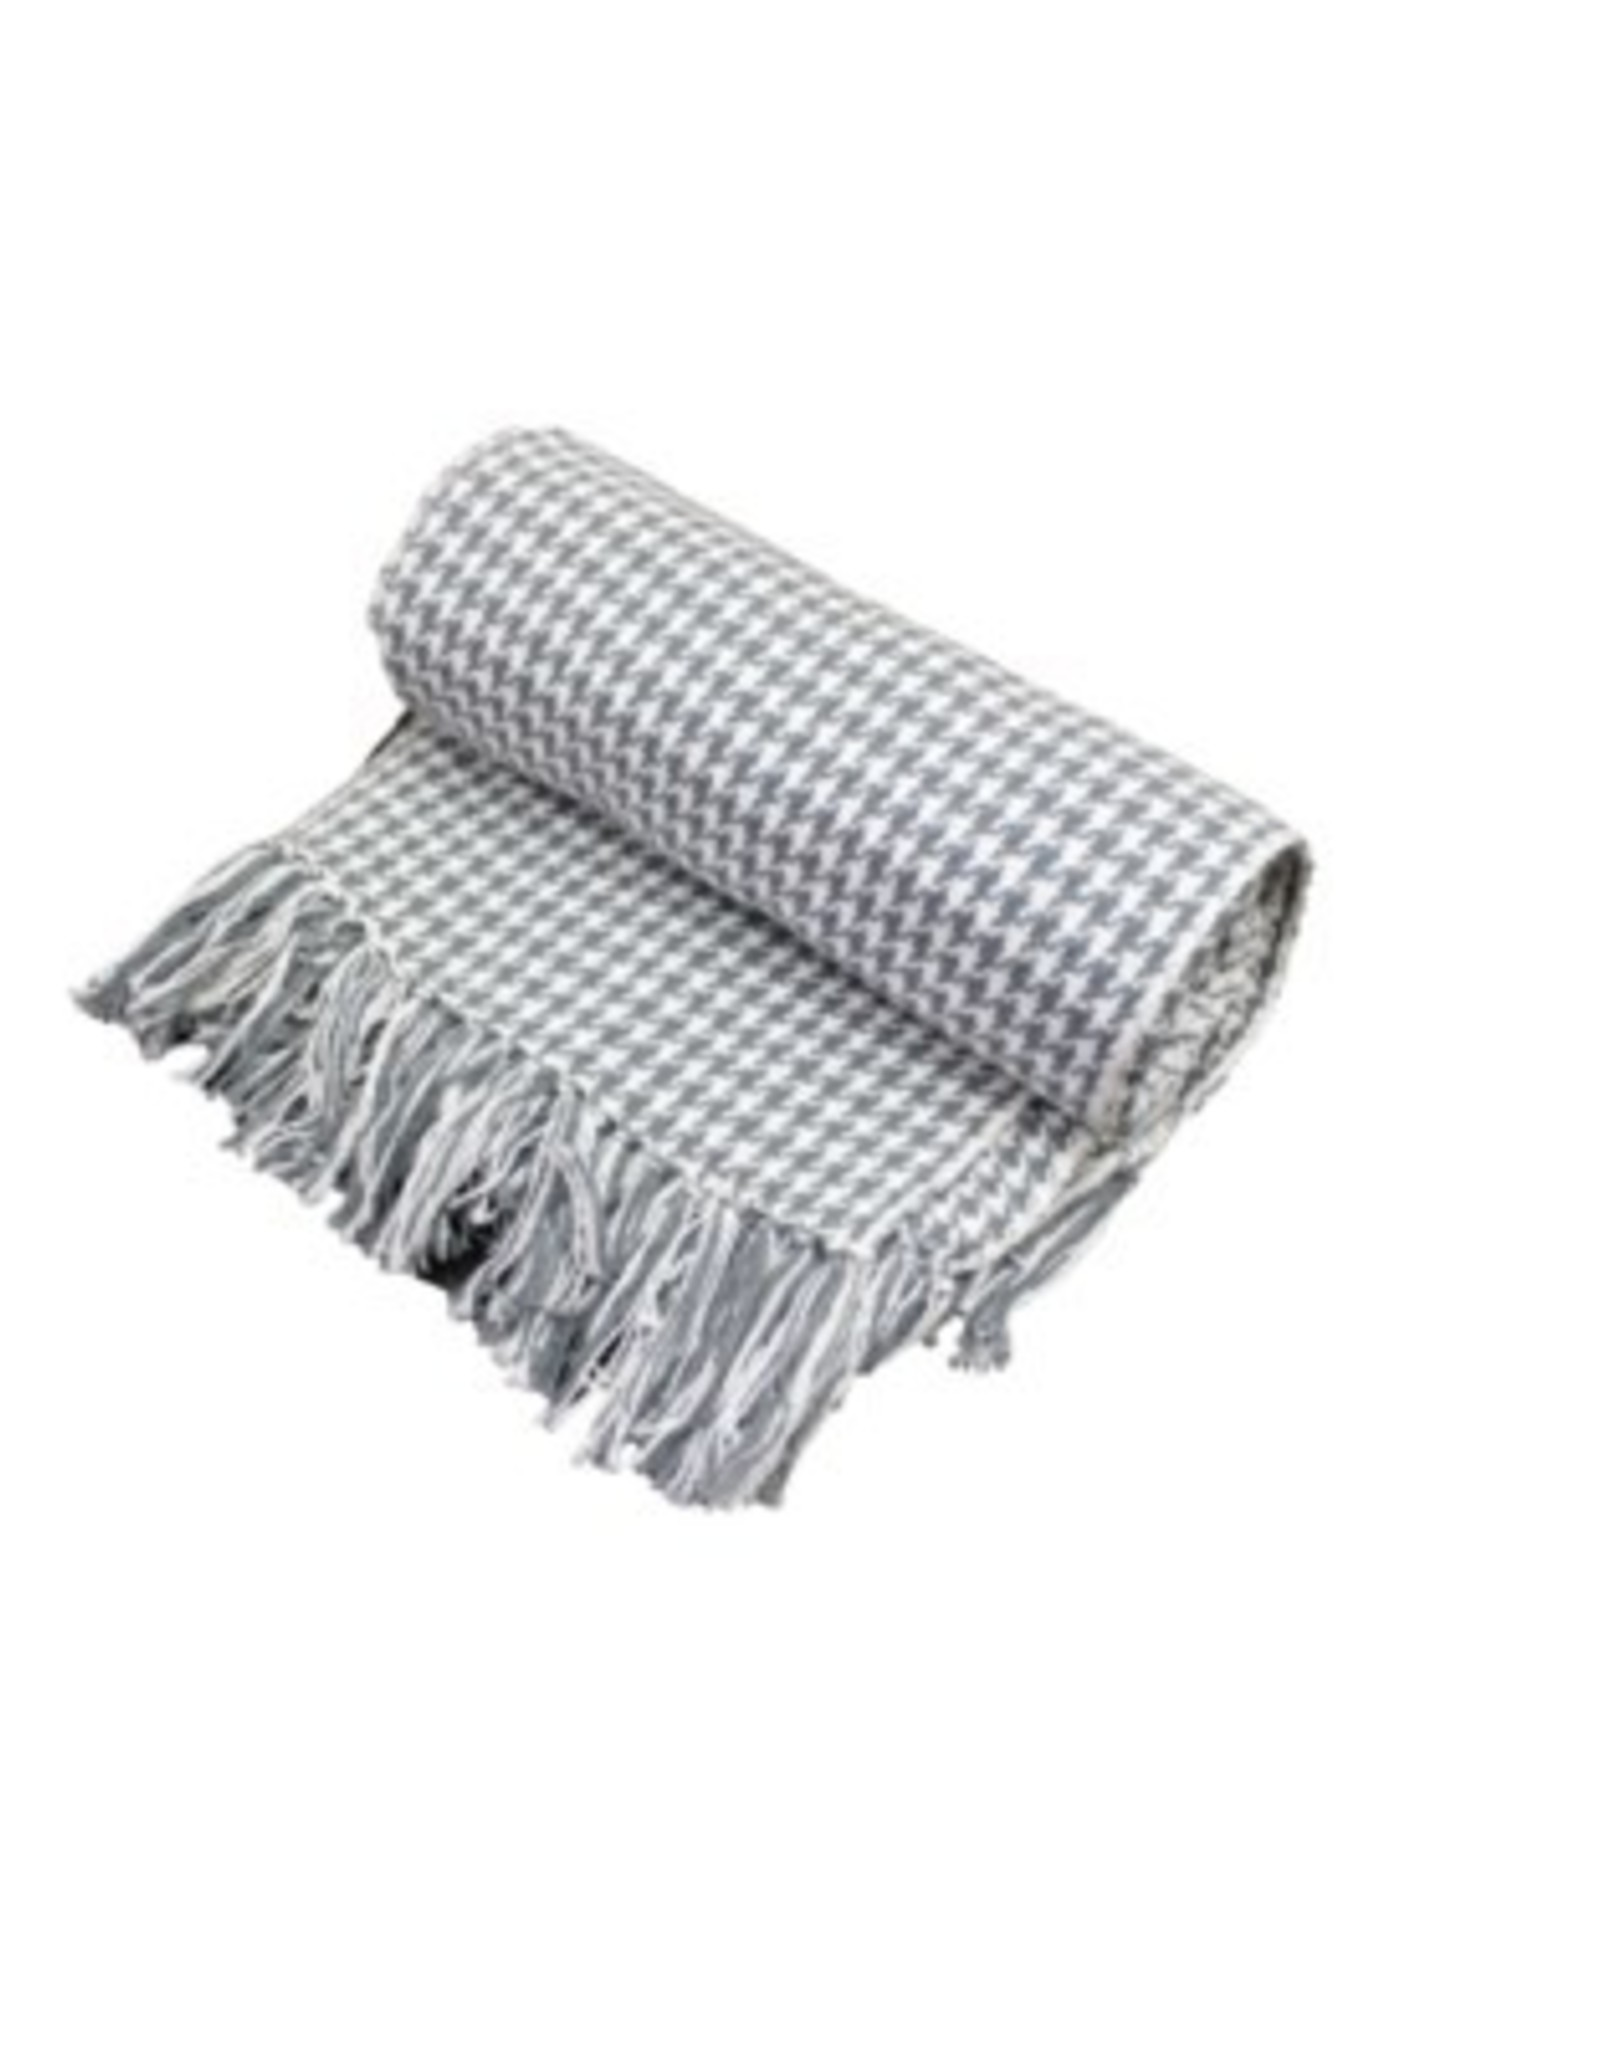 Fab Styles Throw Fab Styles Hounds Tooth Grey 50x60